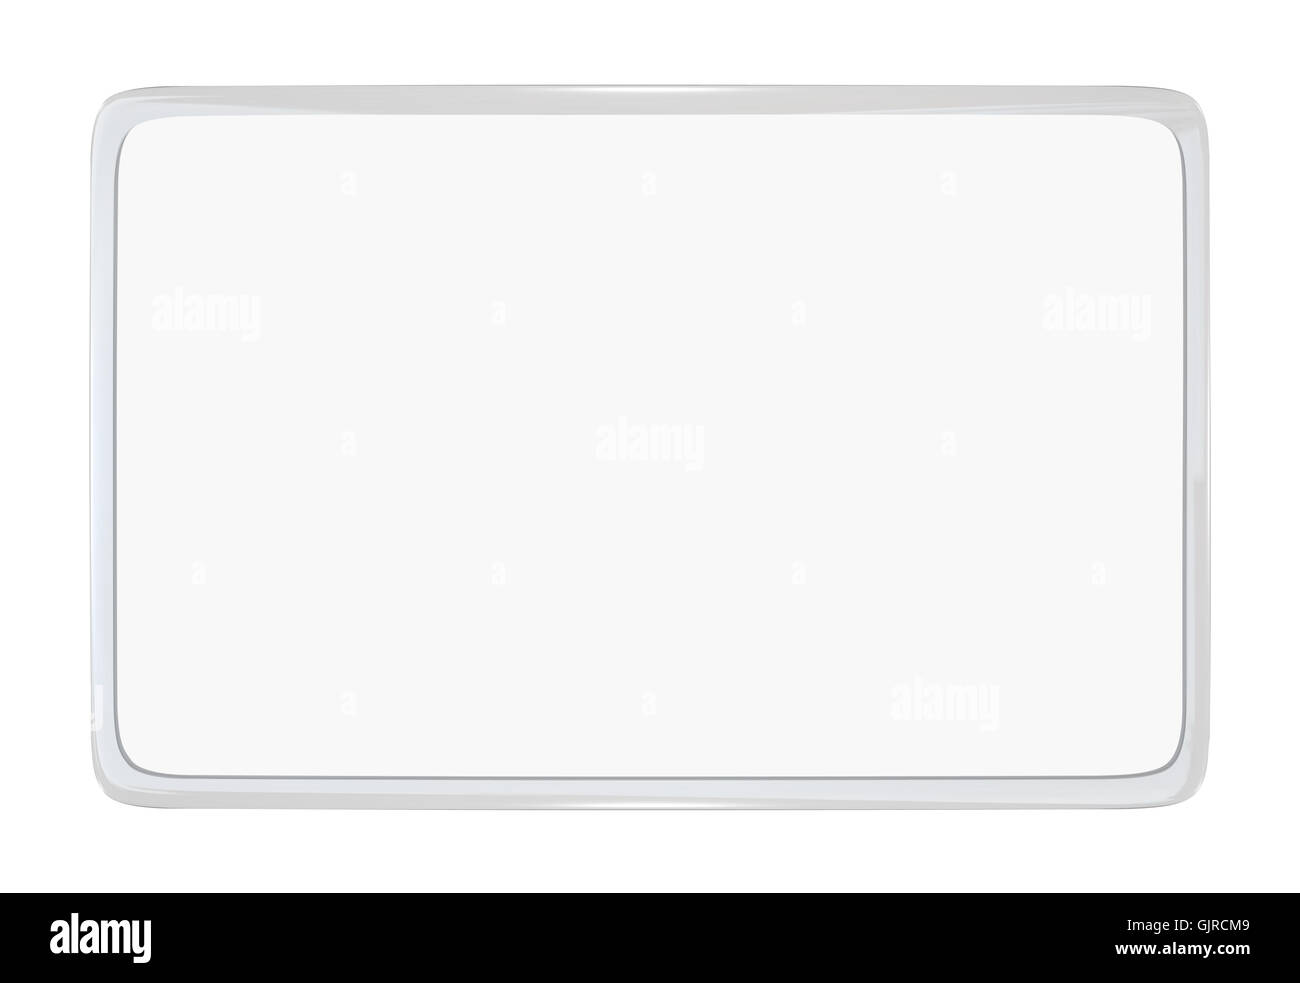 Blank Laminated Card - Place Your Own License or Identification - Stock Image